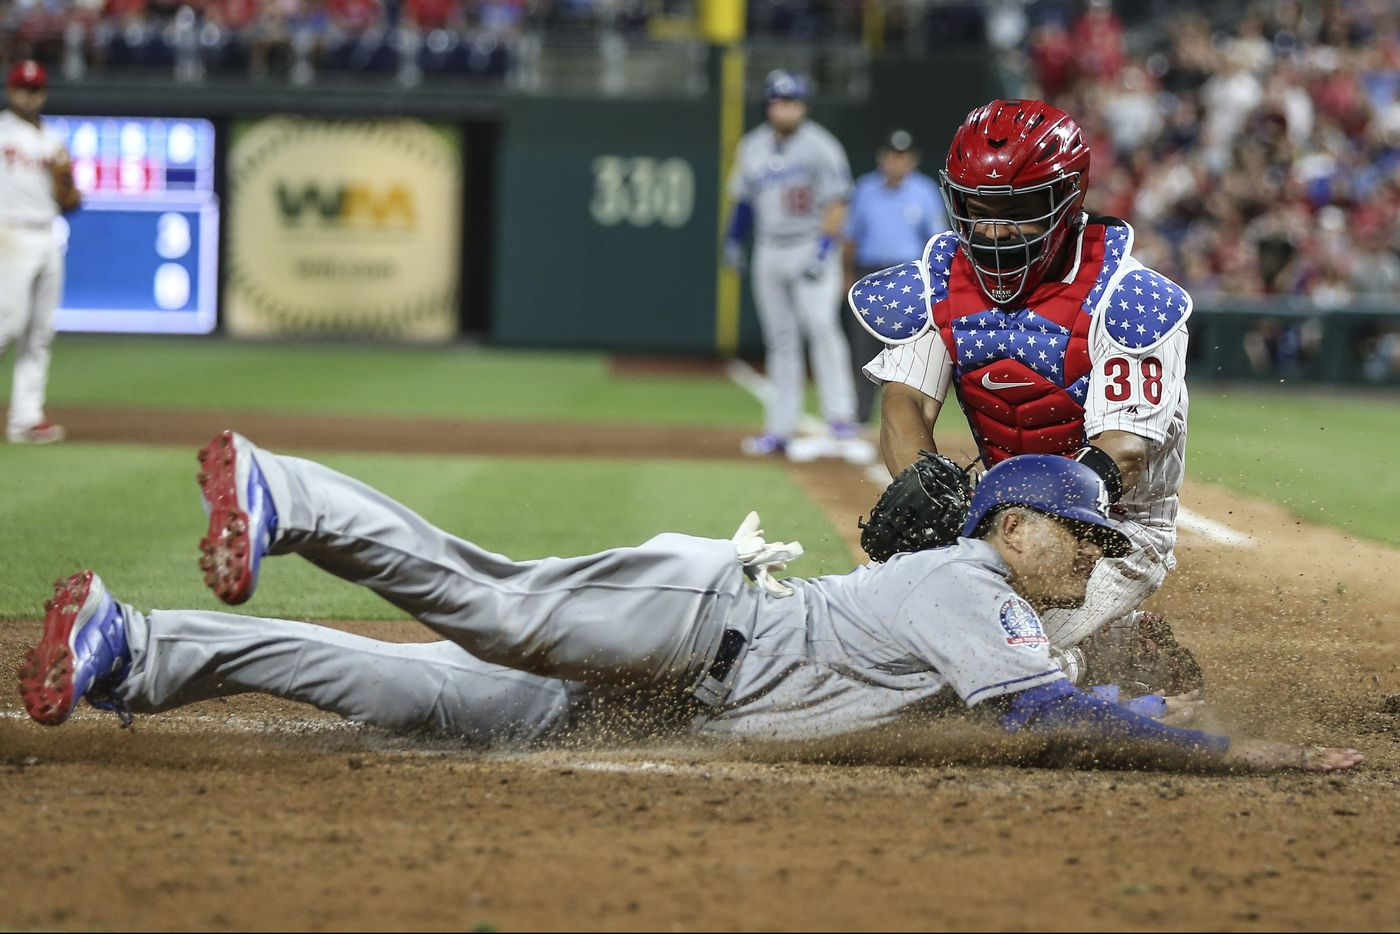 Phillies' past, present, possible future on display in loss to Dodgers